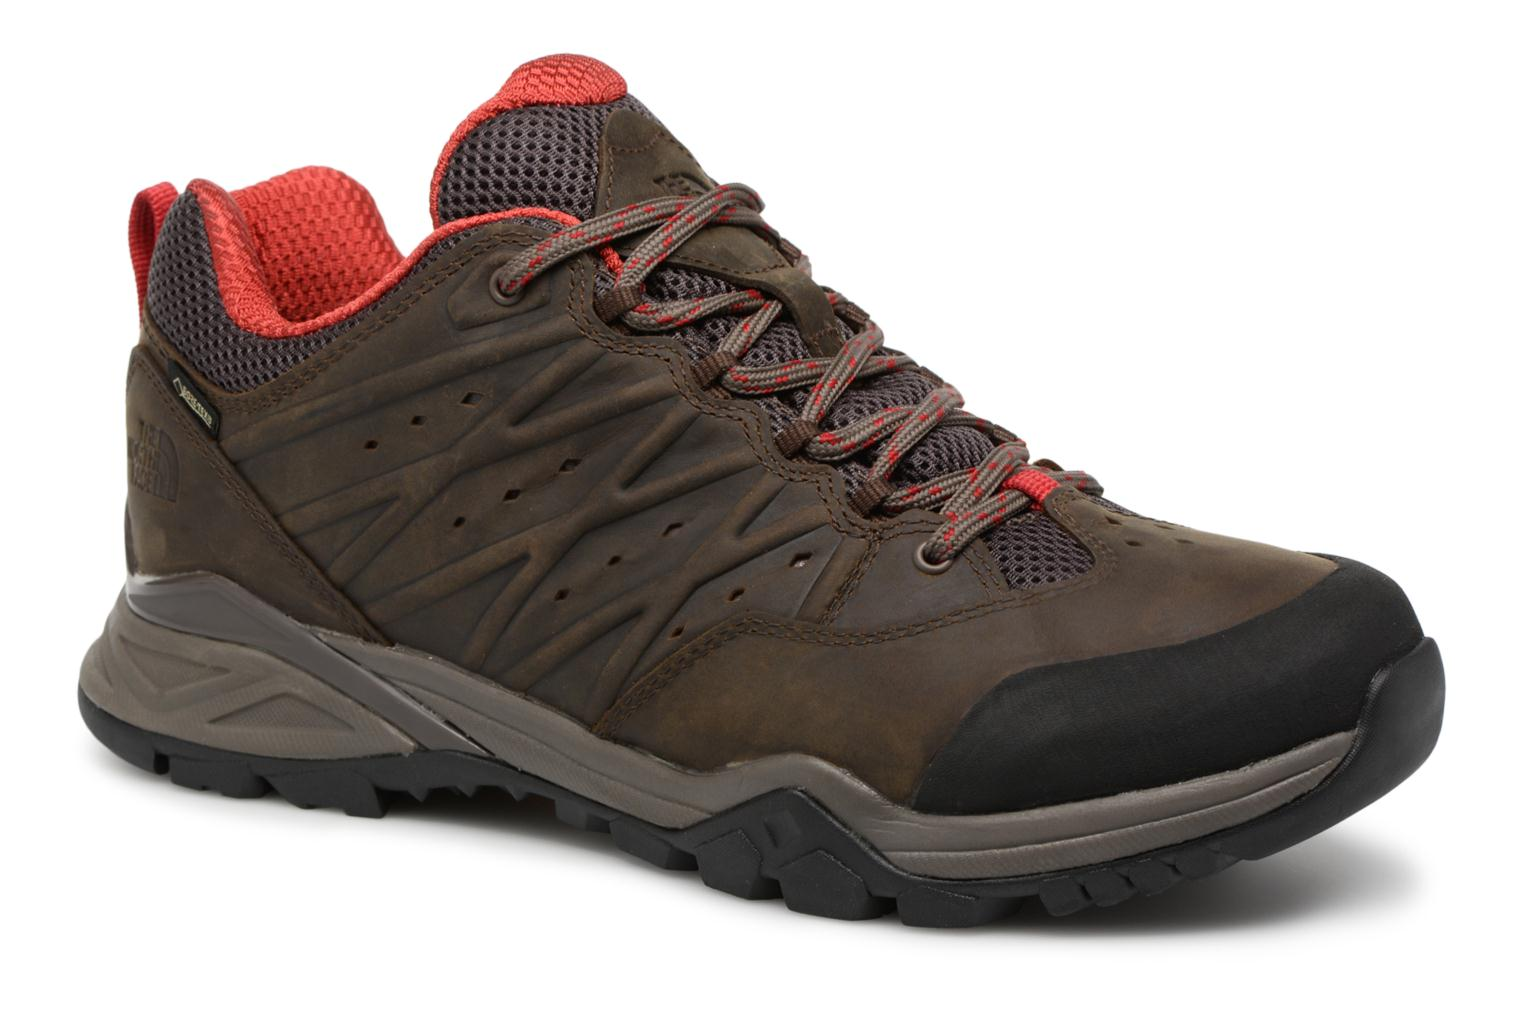 Hedgehog Hike II GTX M by The North Face